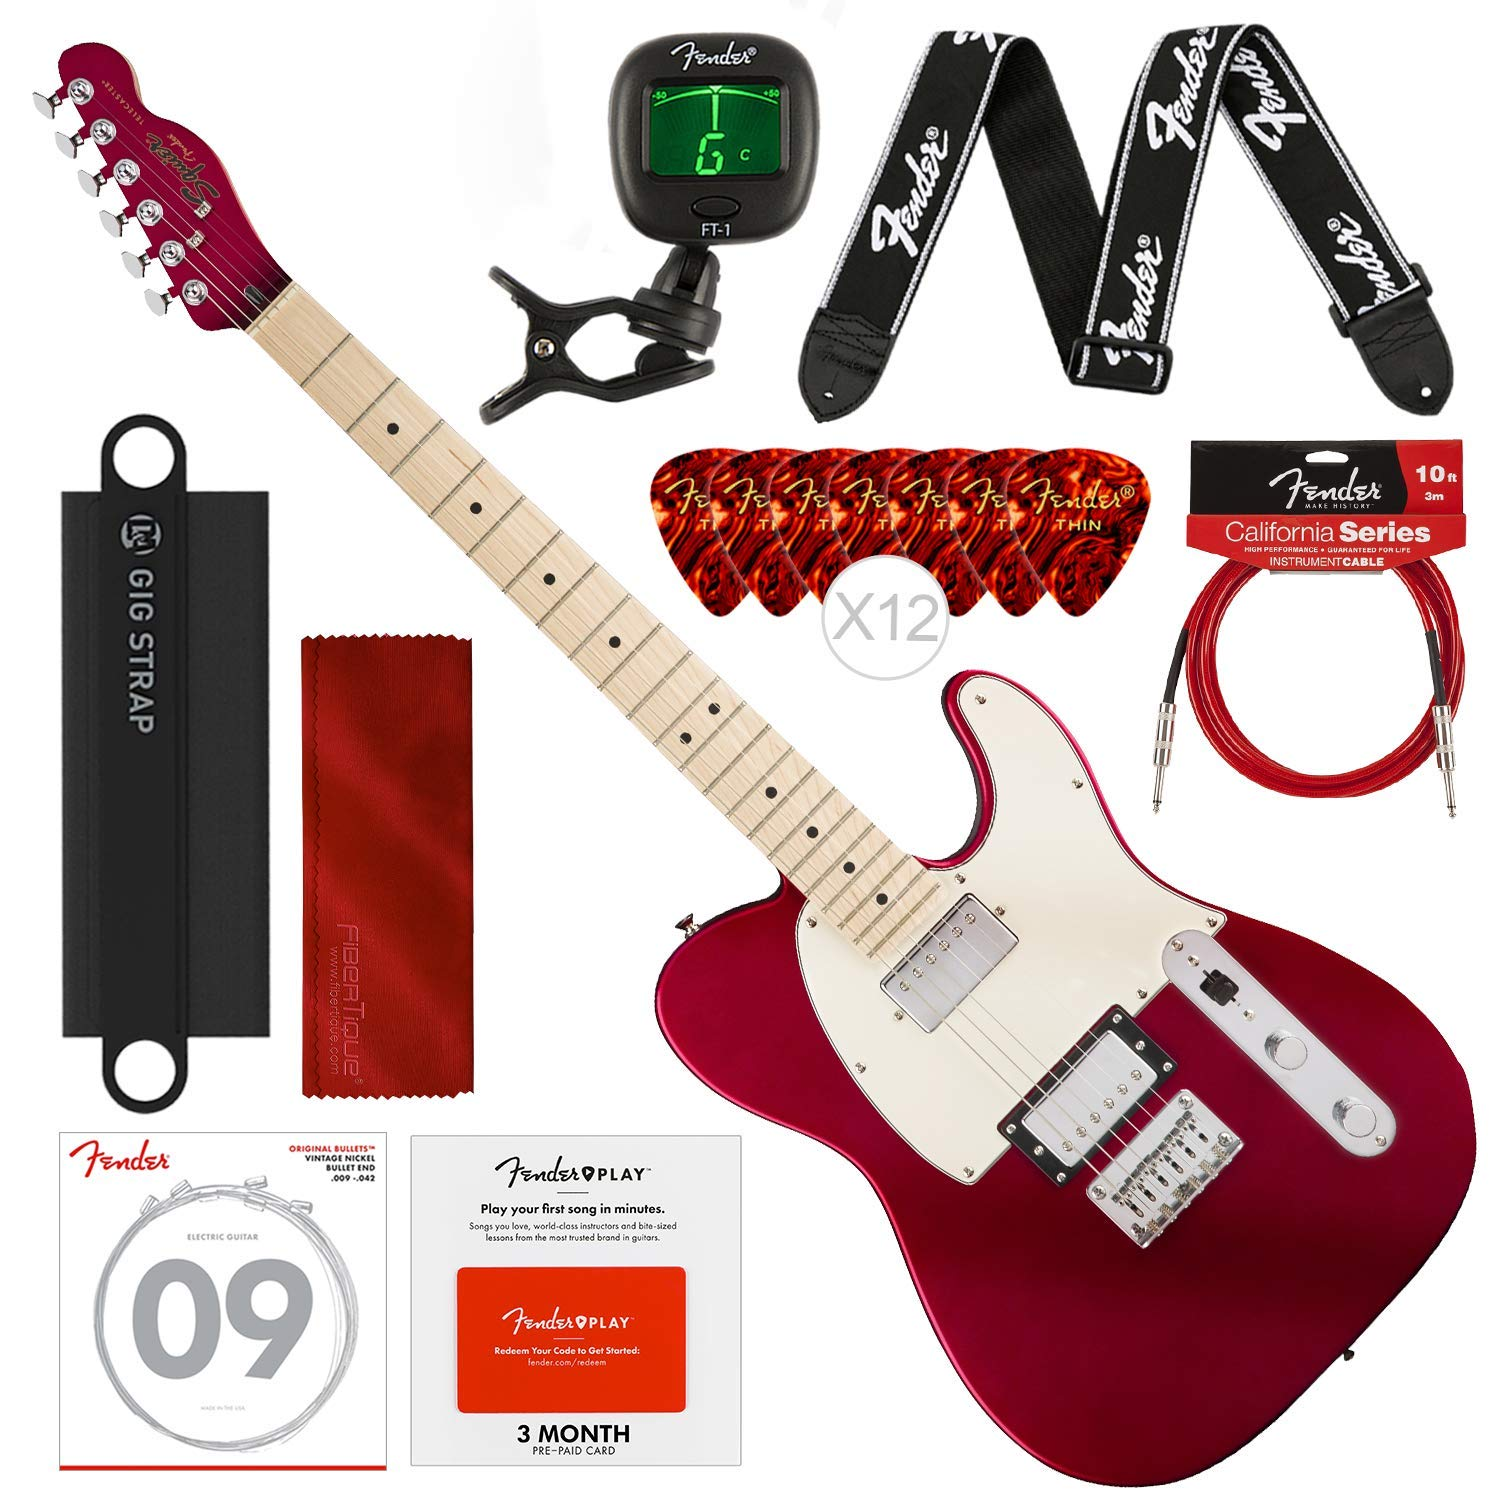 Cheap Squier by Fender Contemporary Telecaster Electric Guitar HH Dark Metallic Red with Fender Play Pre-Paid Card Tuner Strap Strings Picks Cable & Deluxe Bundle Black Friday & Cyber Monday 2019